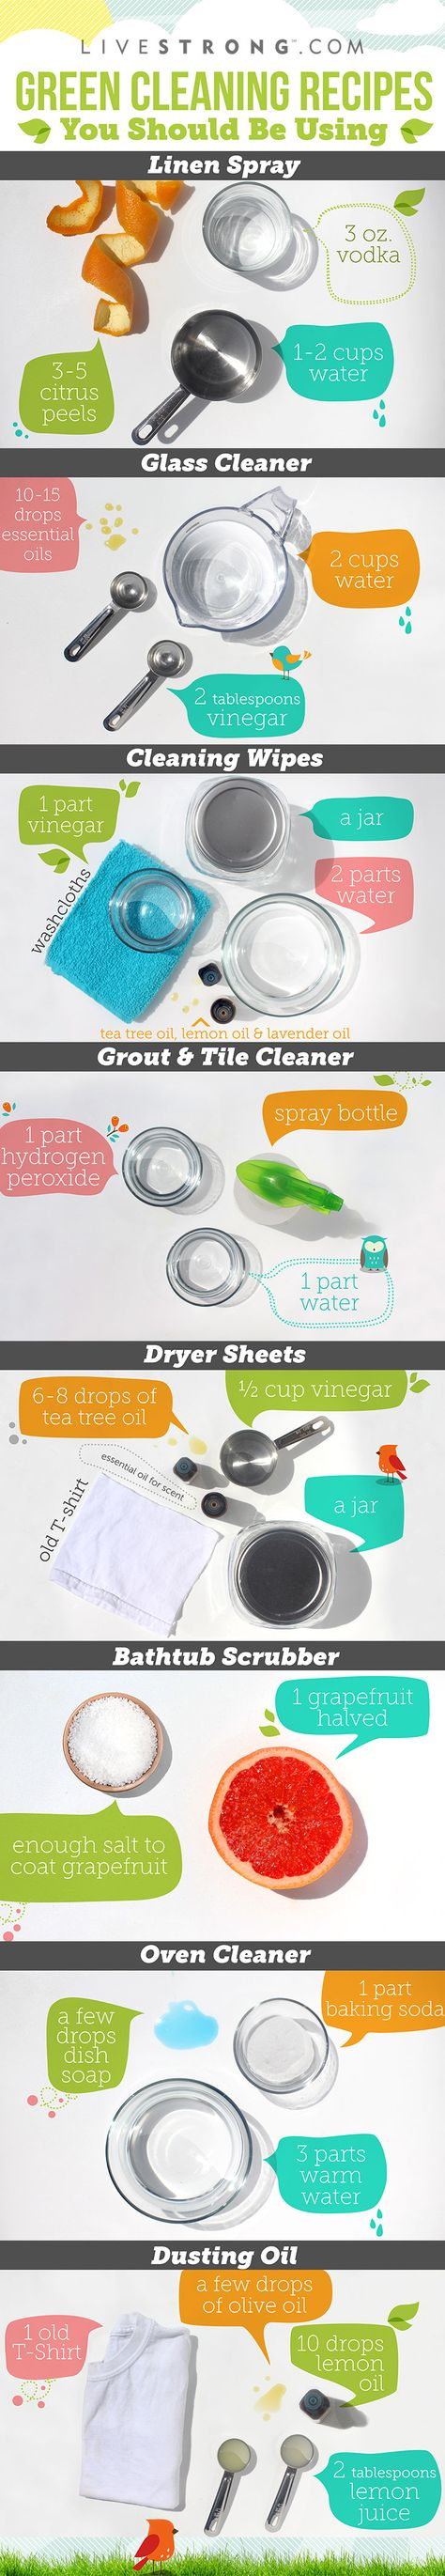 8 Guilt-Free Cleaning Products to Make at Home